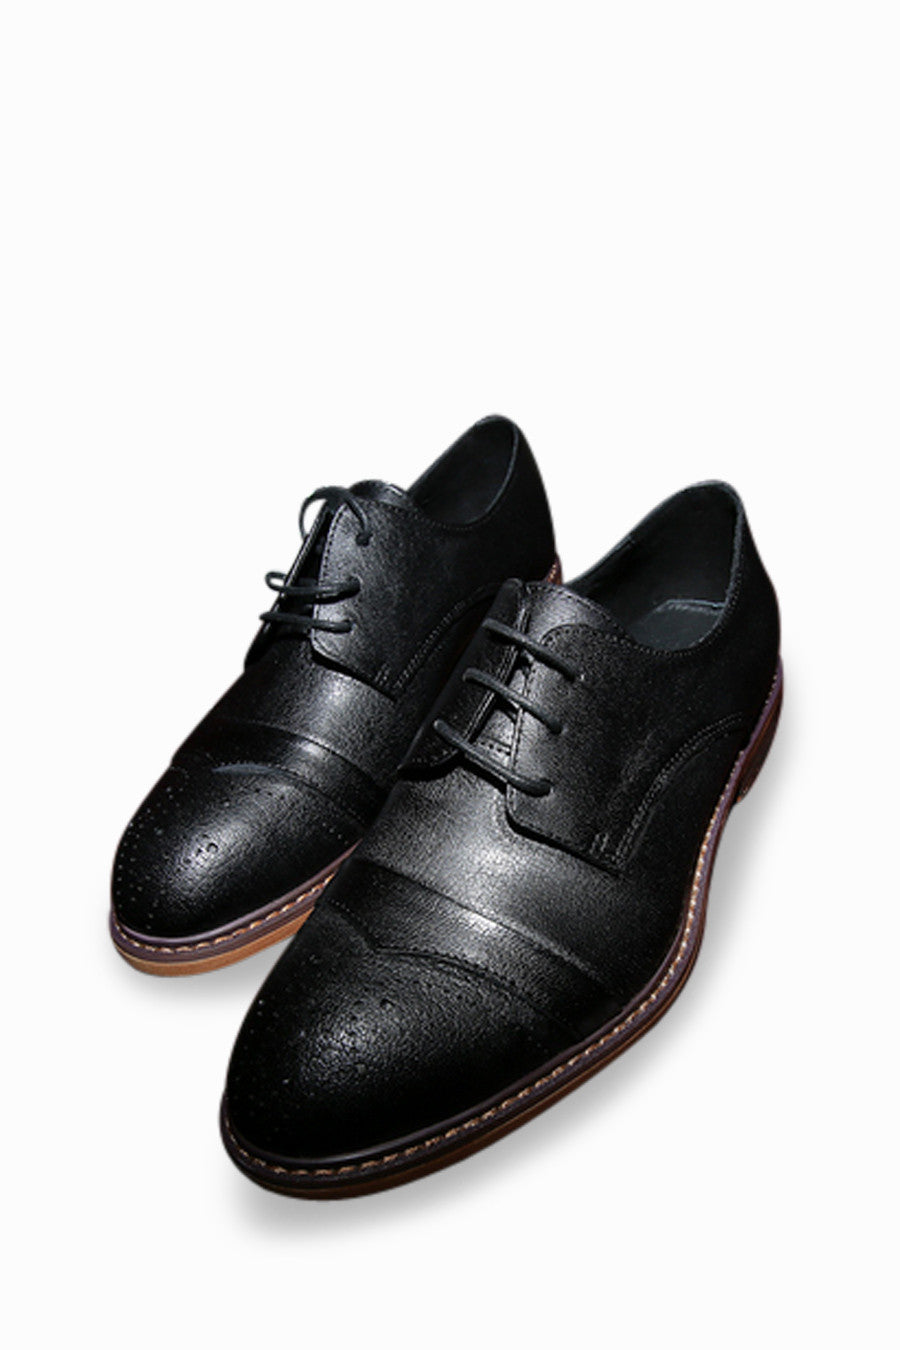 Retro Black Loafers